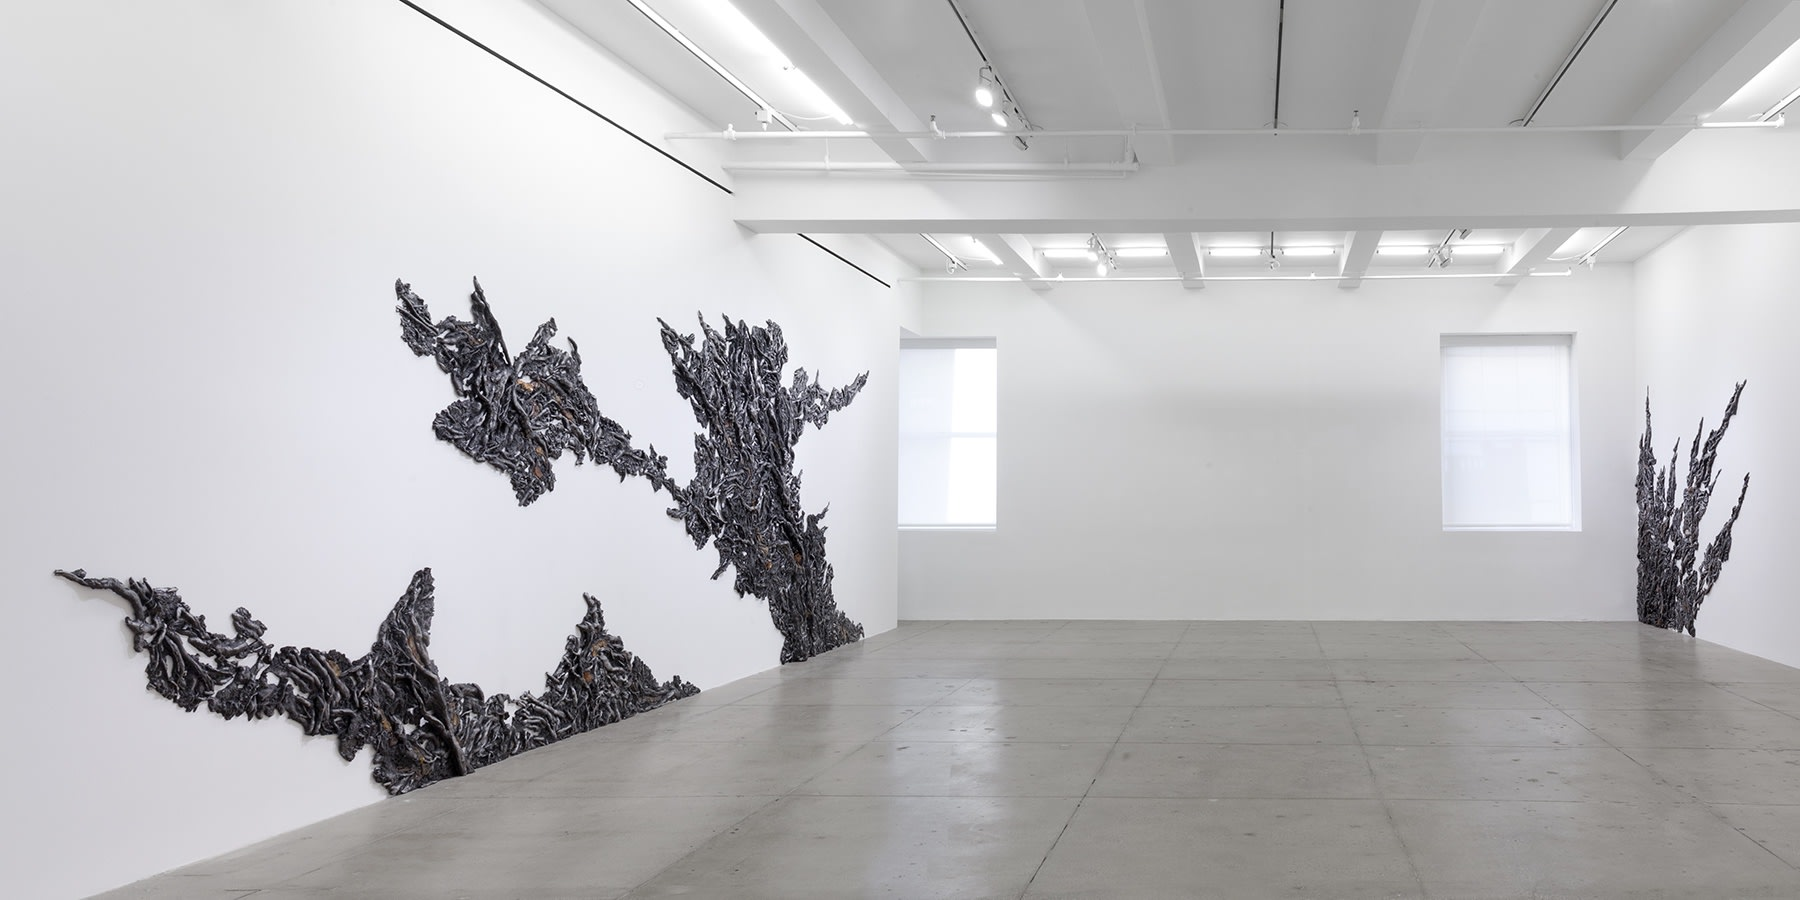 3 organic, plant-like forms climb up the gallery walls from the floor.